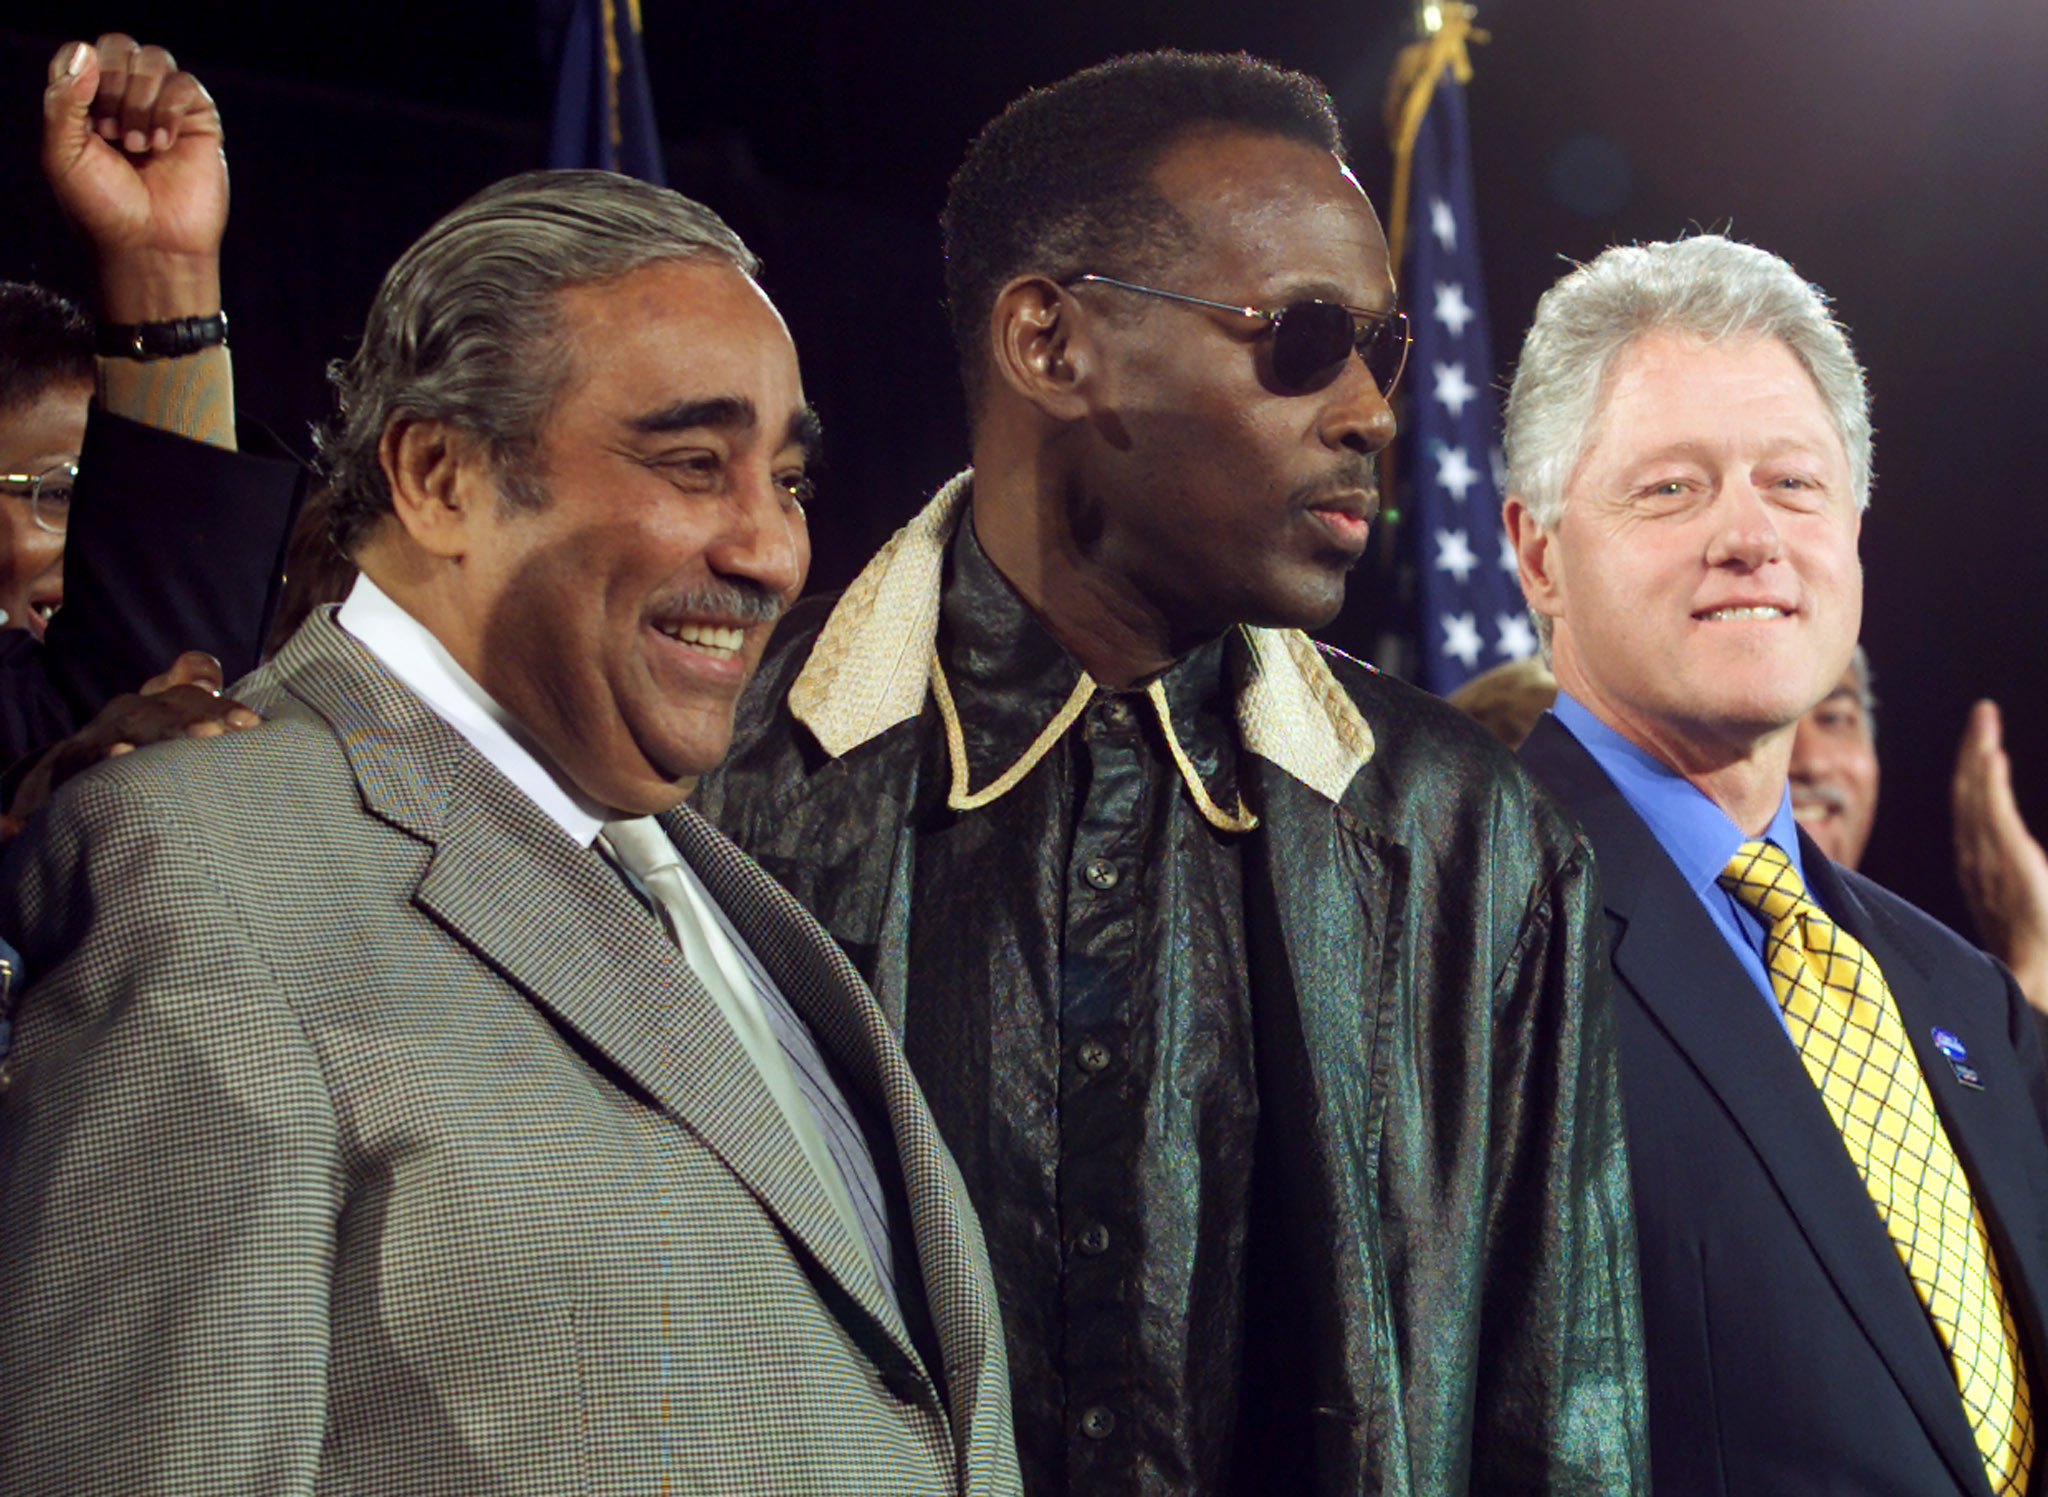 U.S. President Bill Clinton waits to speak to a Democratic rally in the Harlem neighborhood of New York City with Congressman Charles Rangel (D-NY) (L) and singer Luther Vandross (C), Nov. 4, 2000.